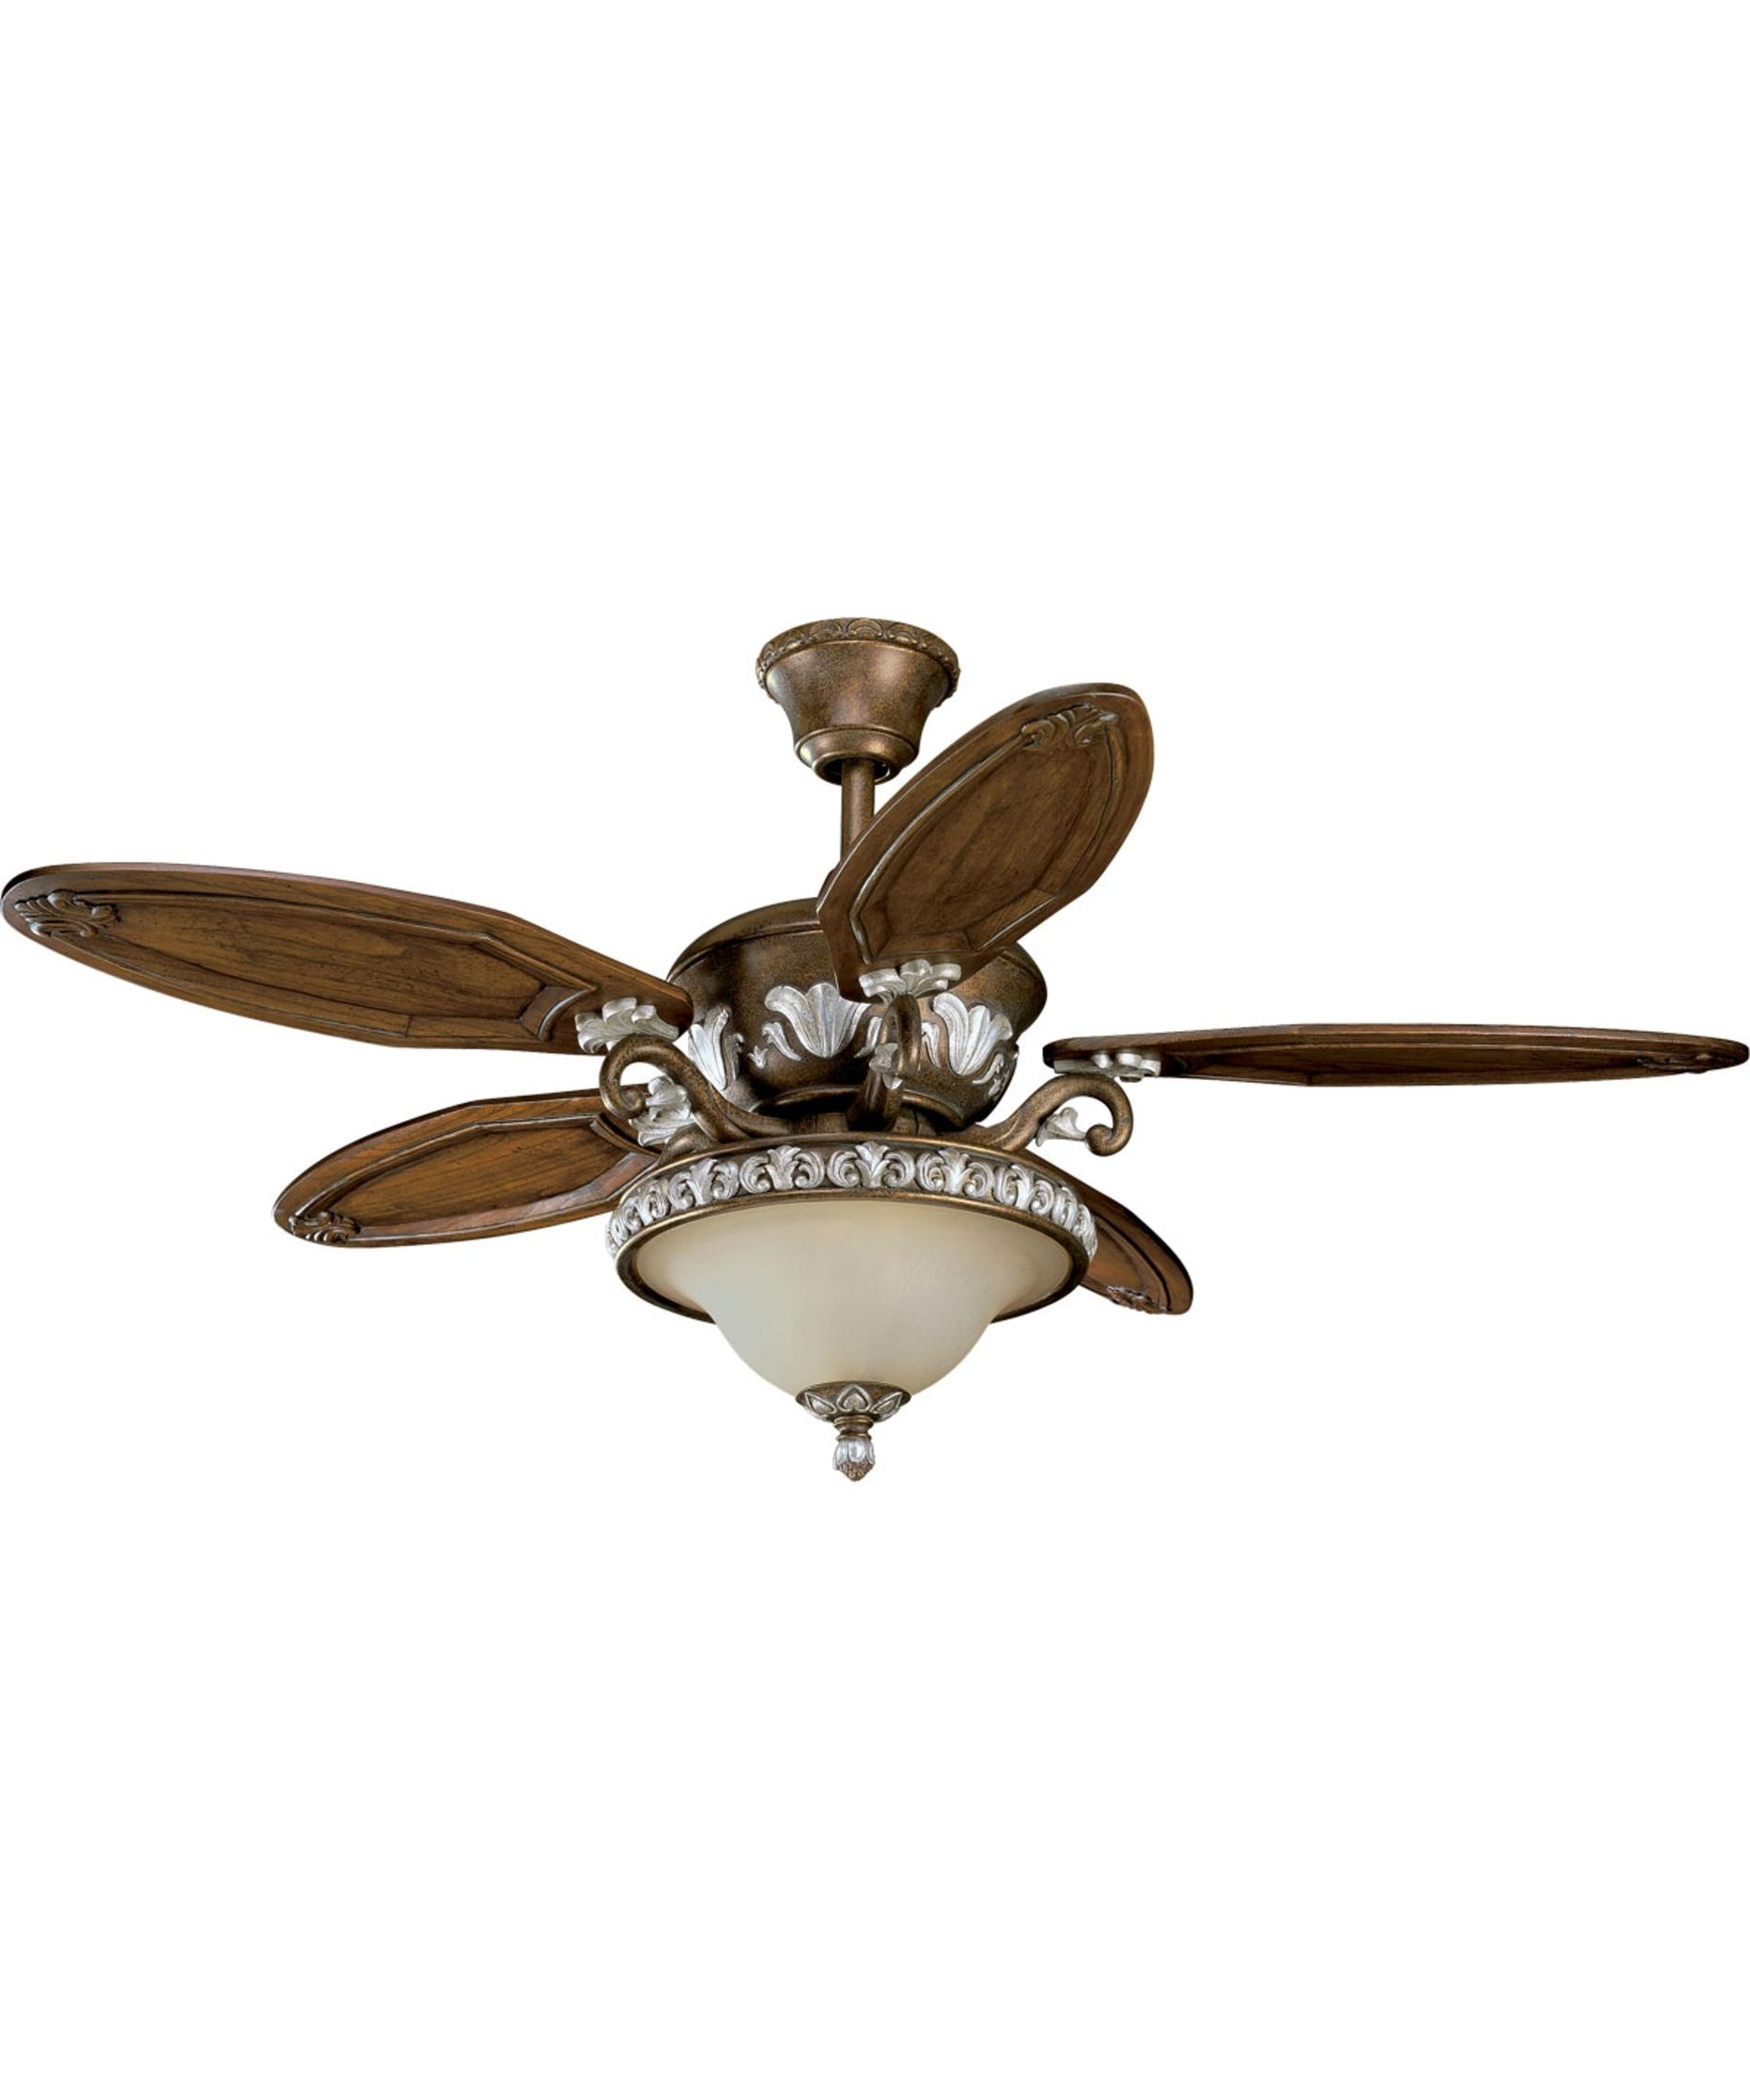 Amazon Outdoor Ceiling Fans With Lights Within Most Current Thomasville Lighting P2505 Carmel 54 Inch 5 Blade Ceiling Fan (View 18 of 20)